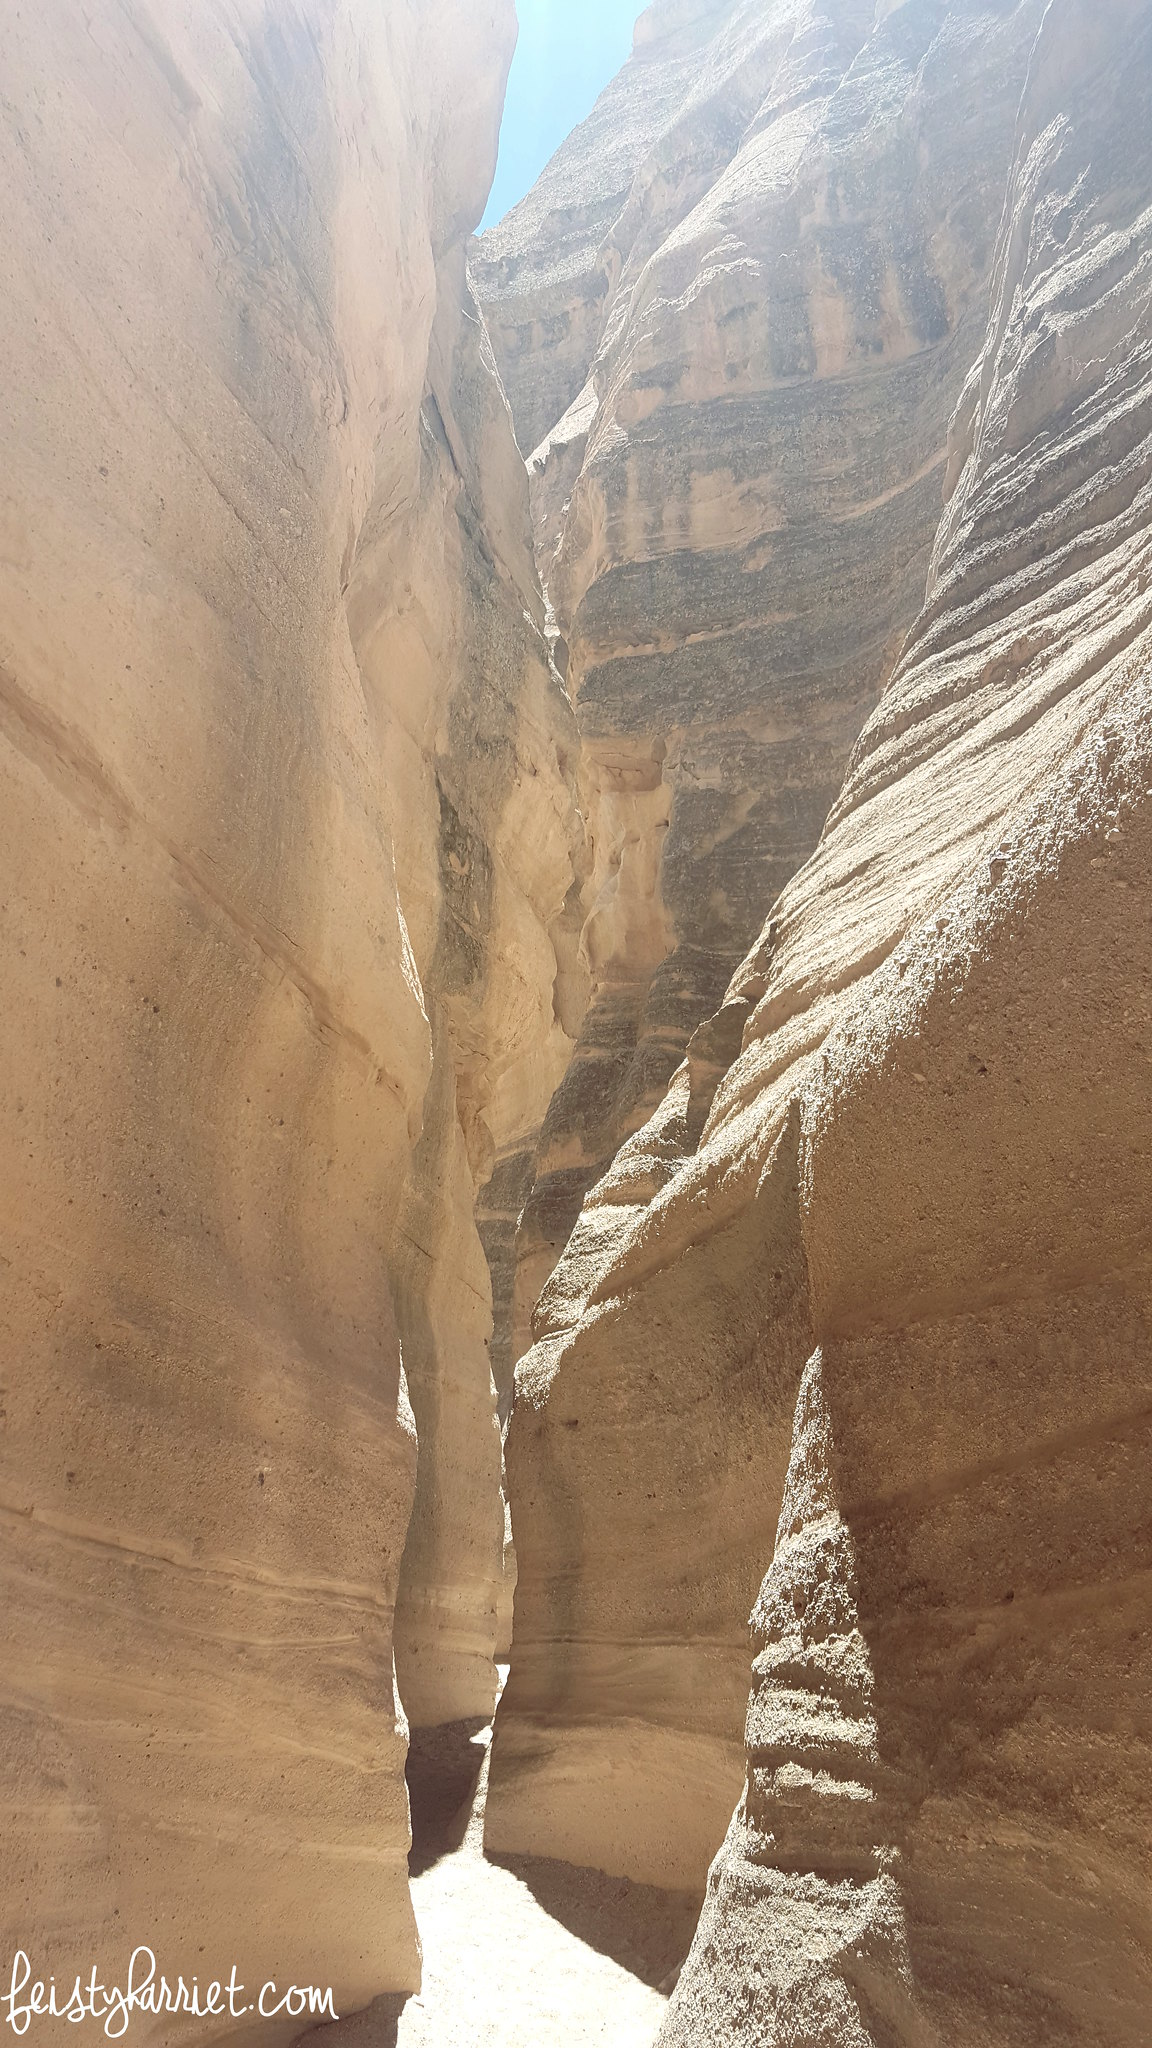 Kasha-Katuwe Tent Rocks NM_feistyharriet_July 2016 (6)